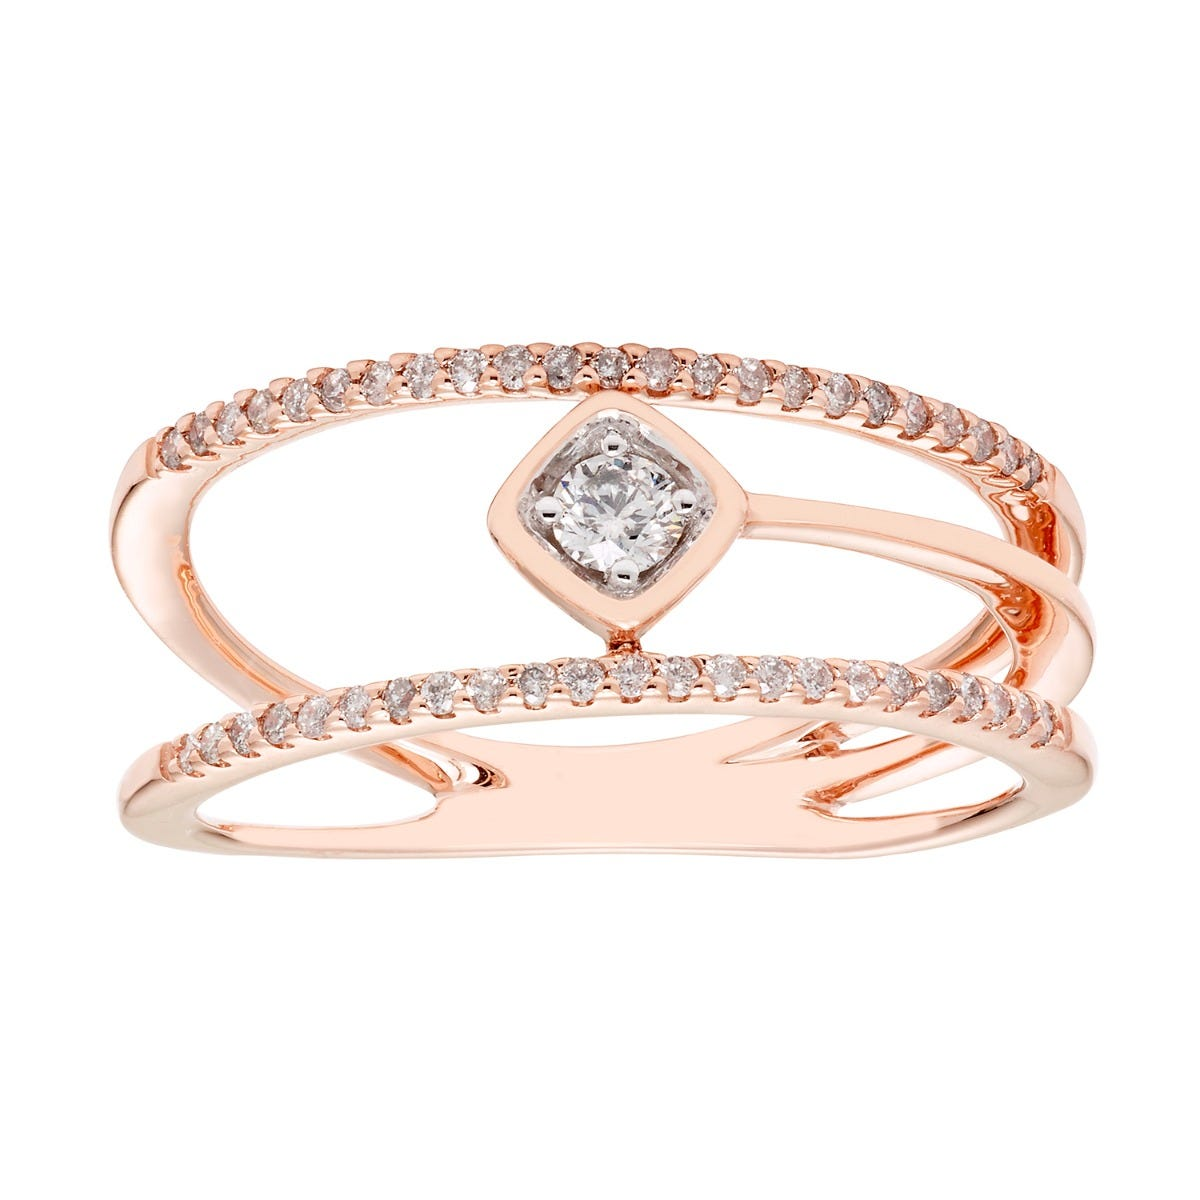 Brilliant-Cut Multi-Row Diamond Fashion Ring 1/4ctw in 10k Rose Gold